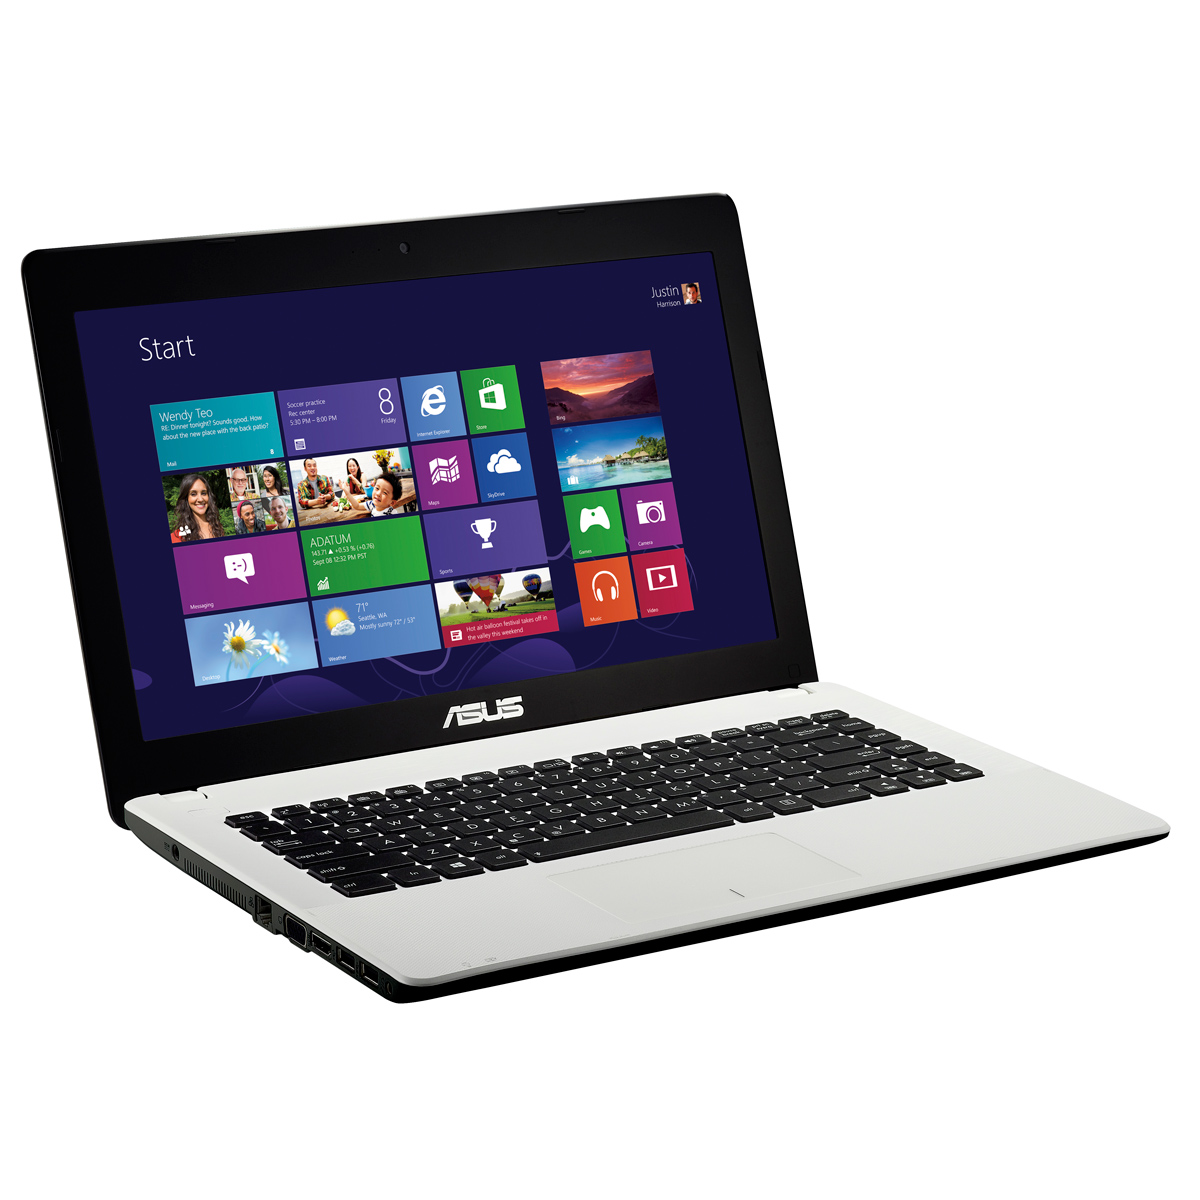 "PC portable ASUS X451CA-VX092H Intel Pentium 2117U 4 Go 750 Go 14"" LED Graveur DVD Wi-Fi N Webcam Windows 8 64 bits (garantie constructeur 1 an)"